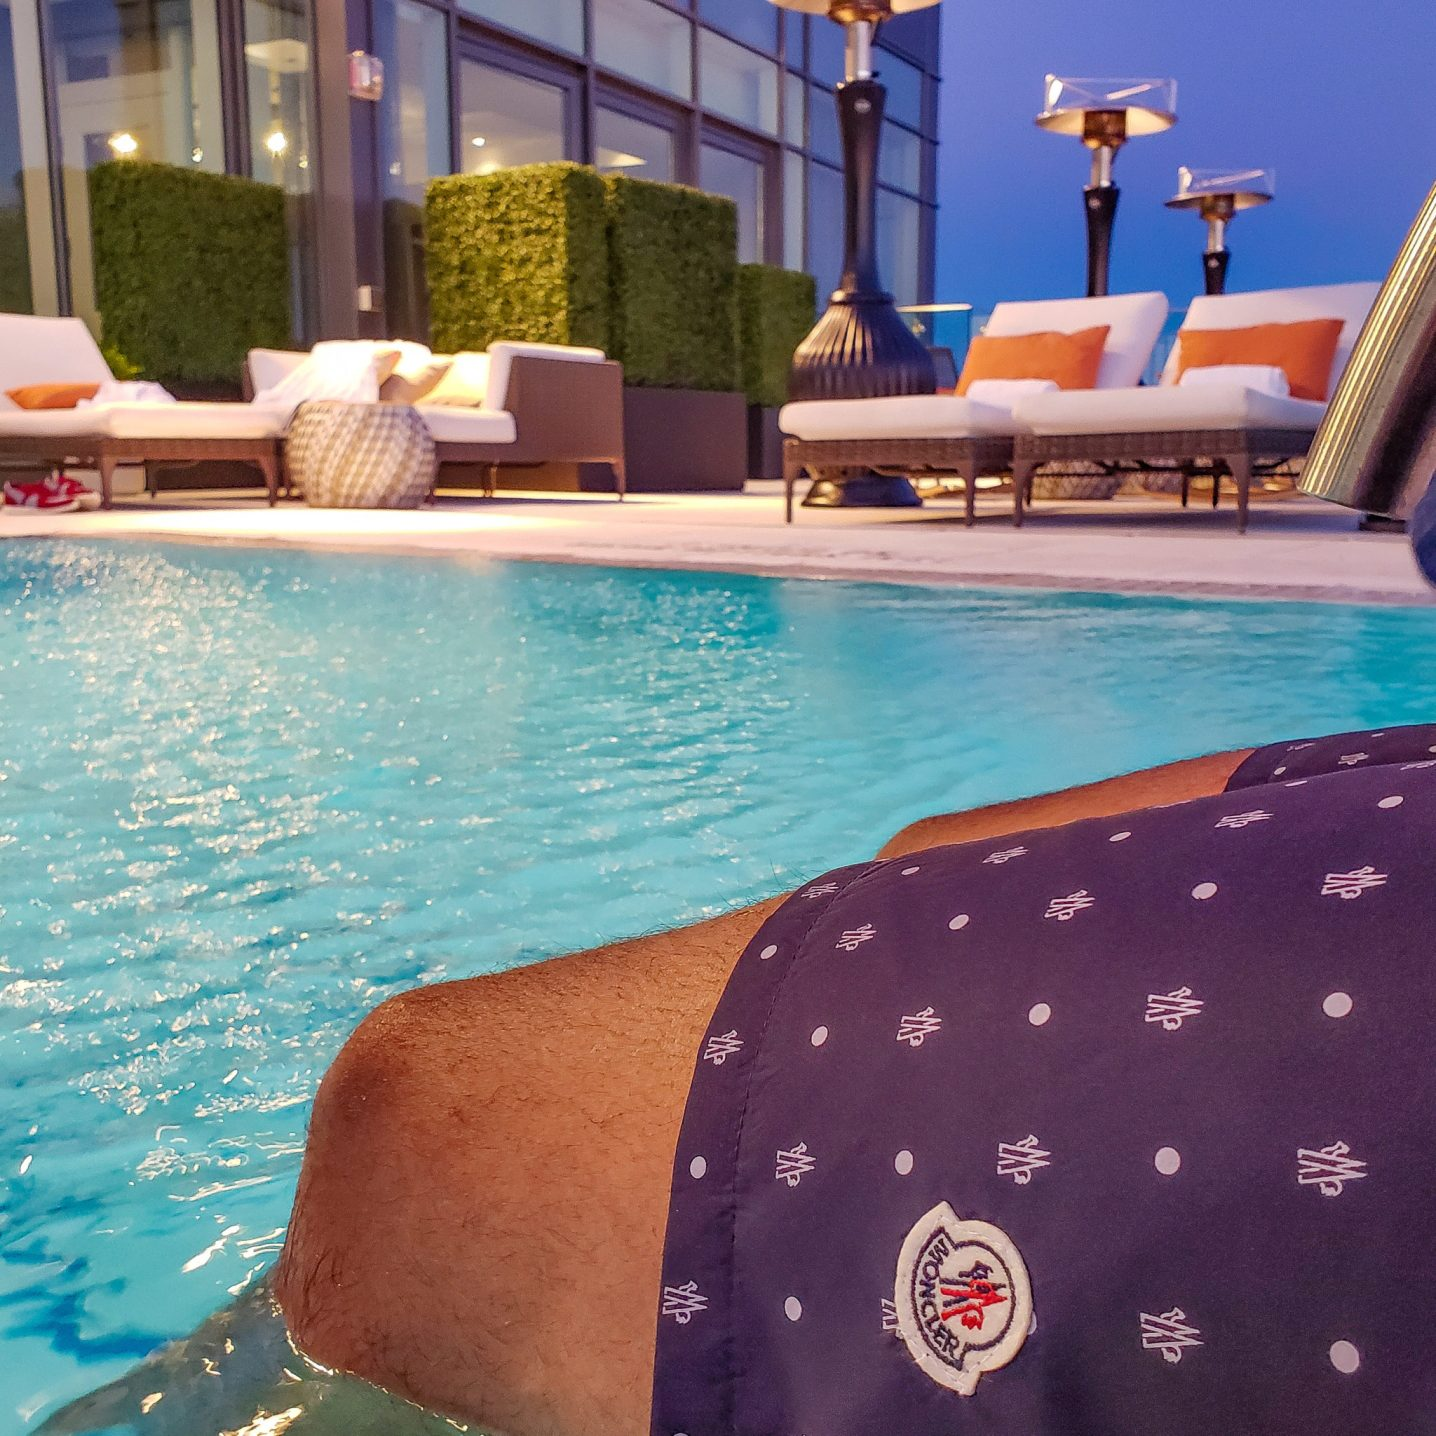 Just Sultan - Hotel X - Birthday Celebration - Pool